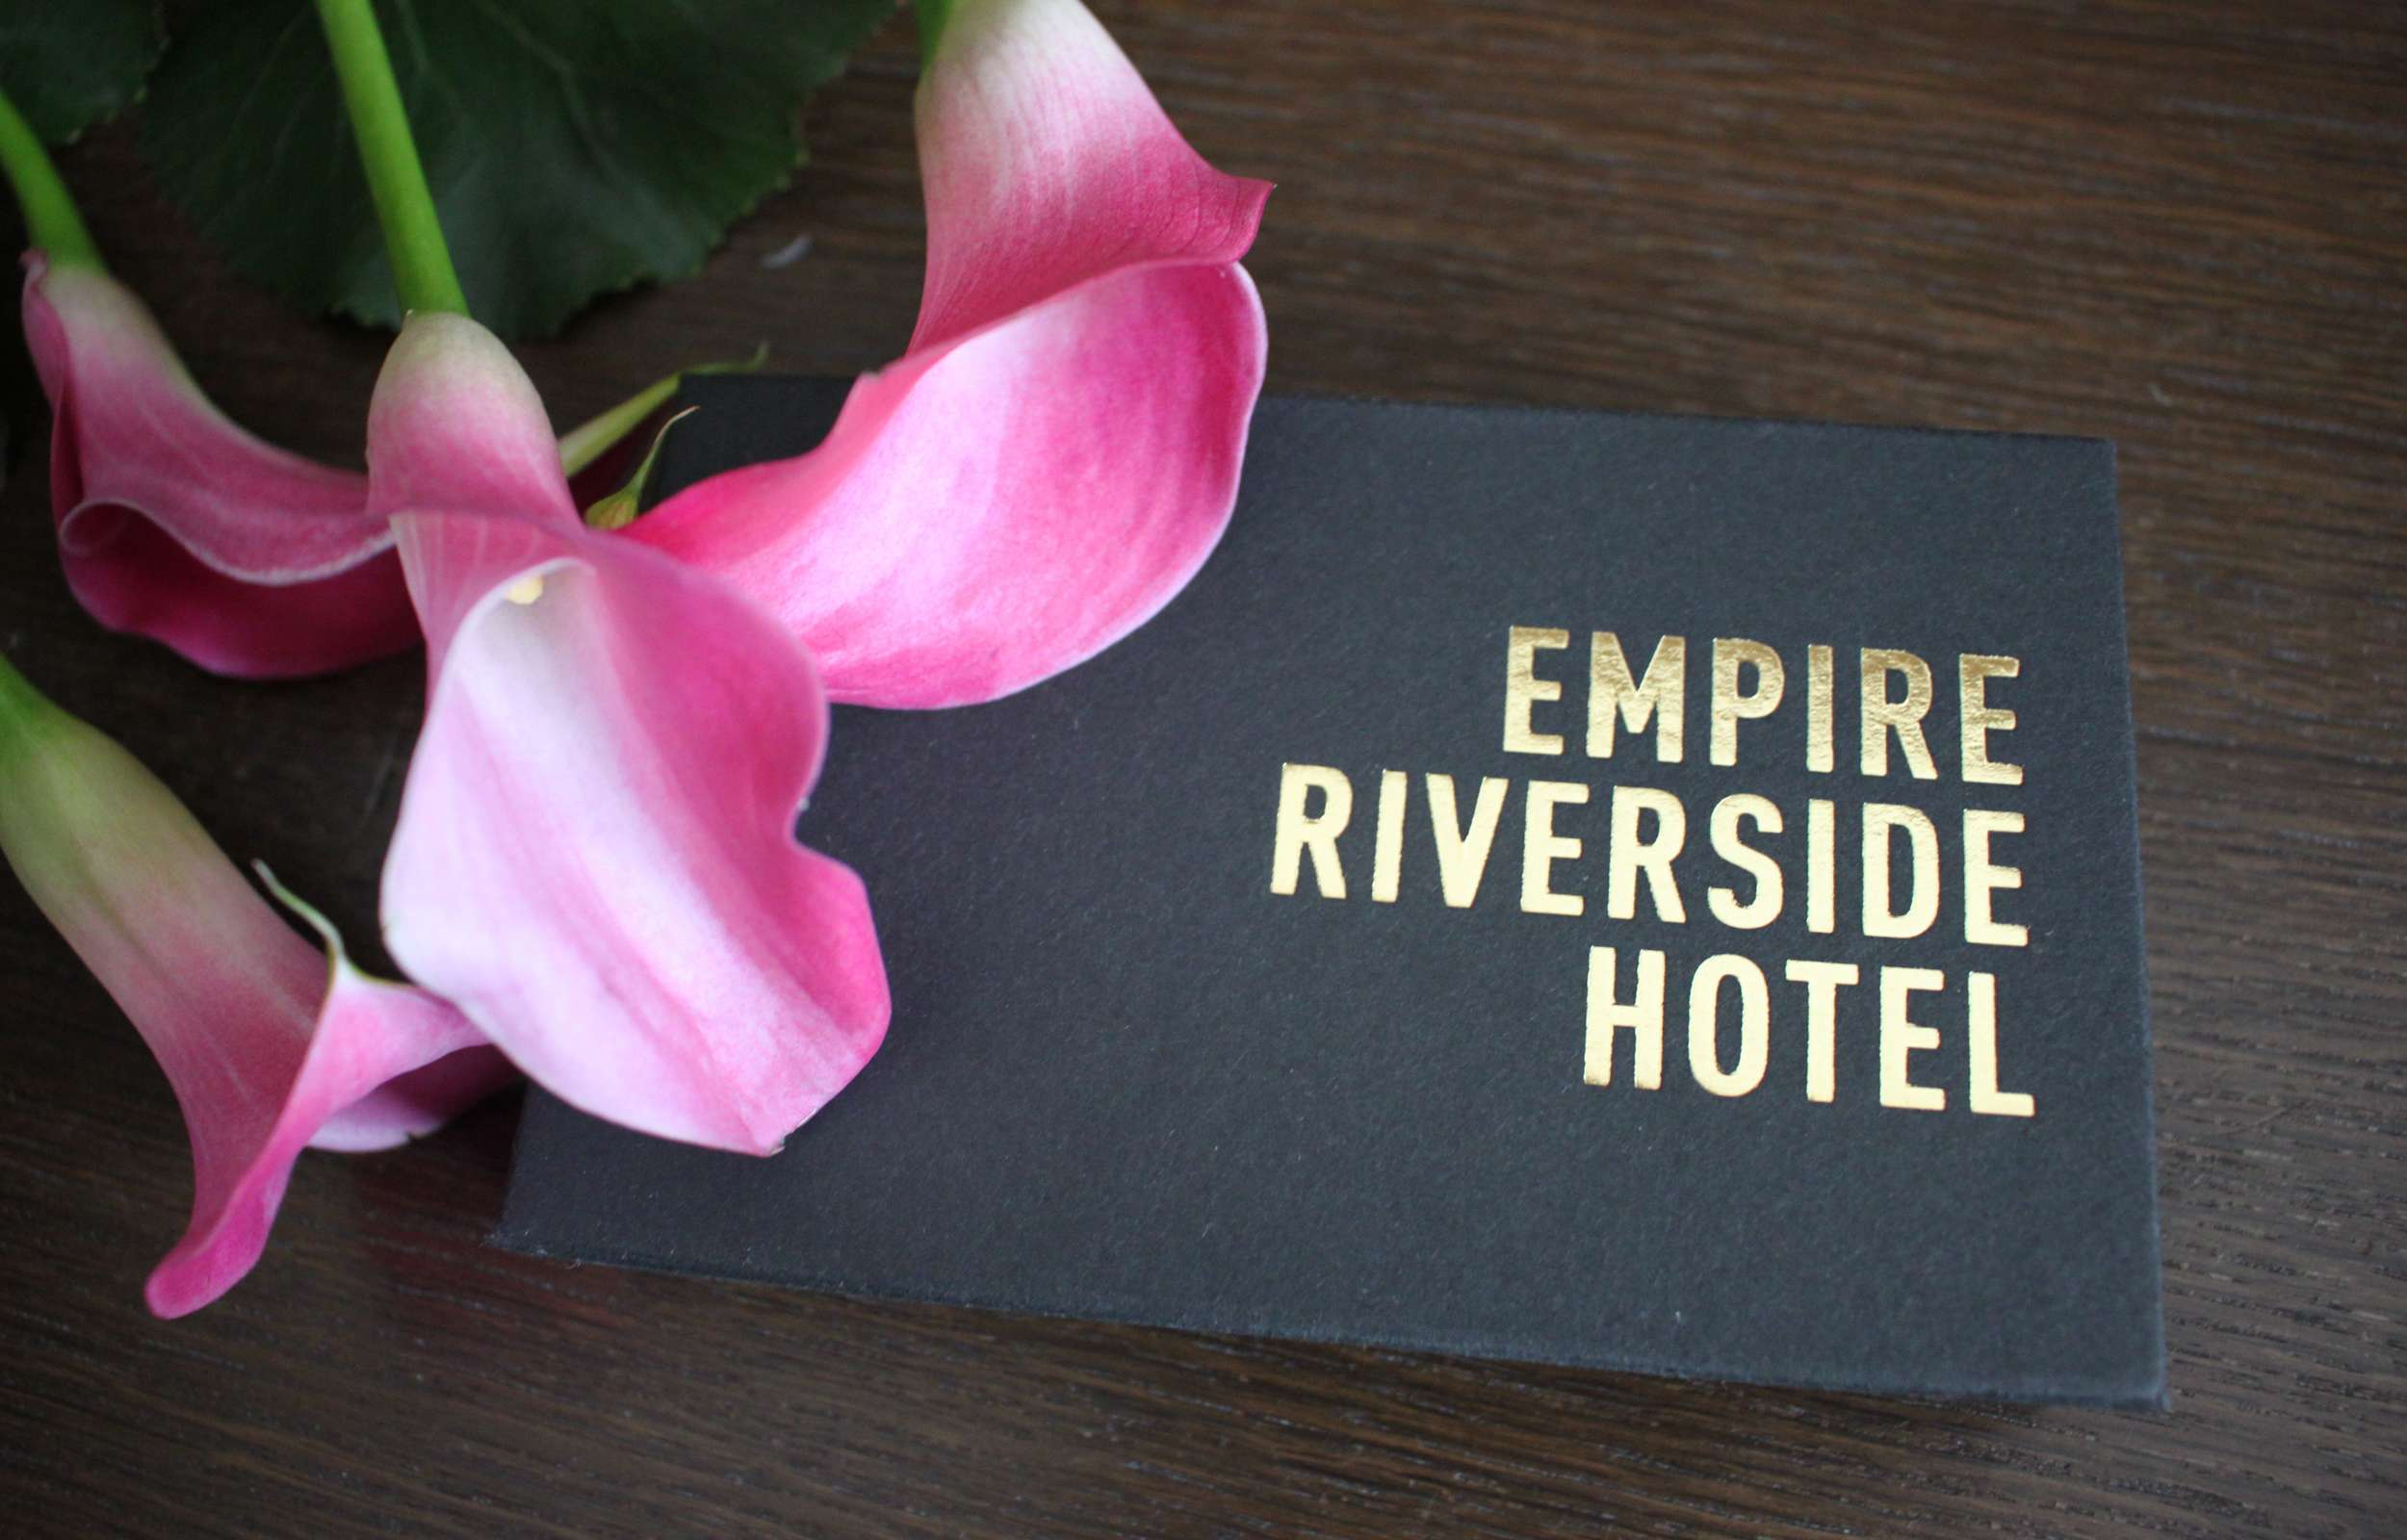 A voucher for the Empire Riverside Hotel